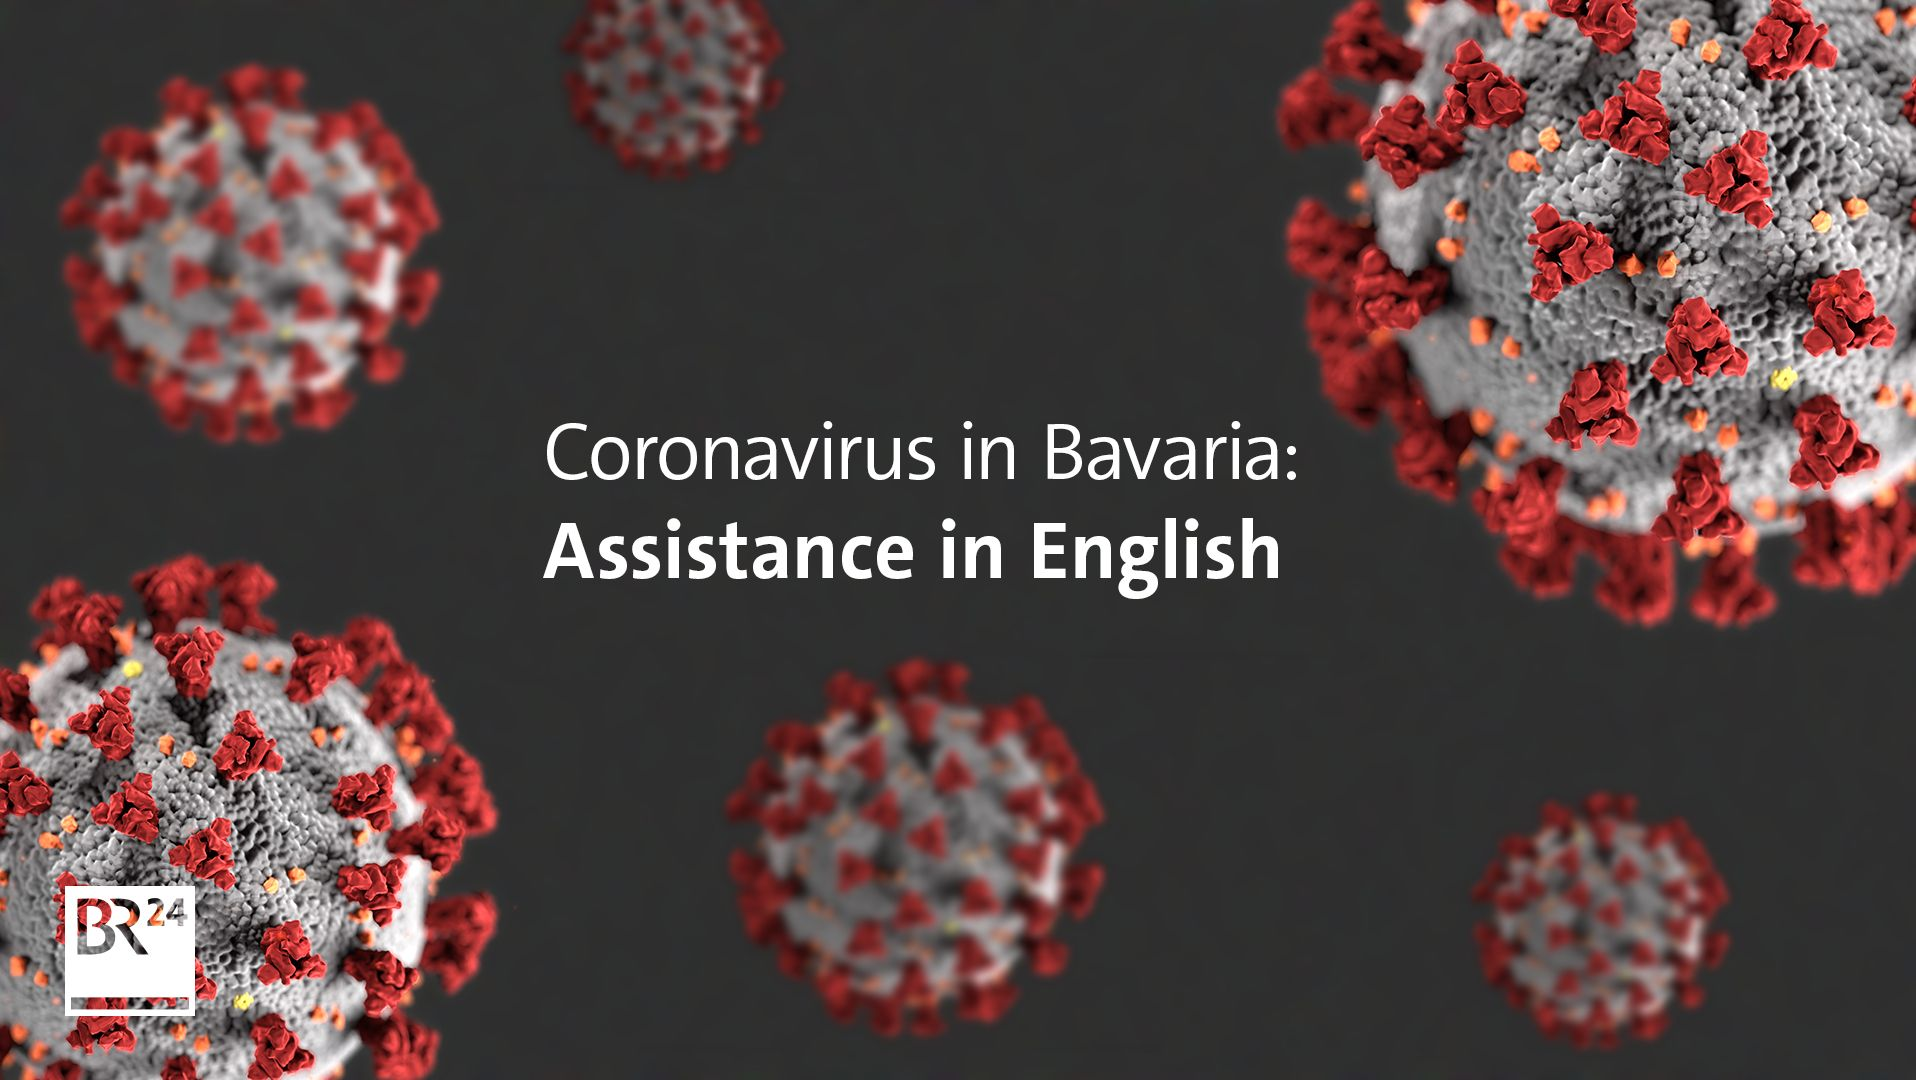 Coronavirus in Bavaria: Assistance in English